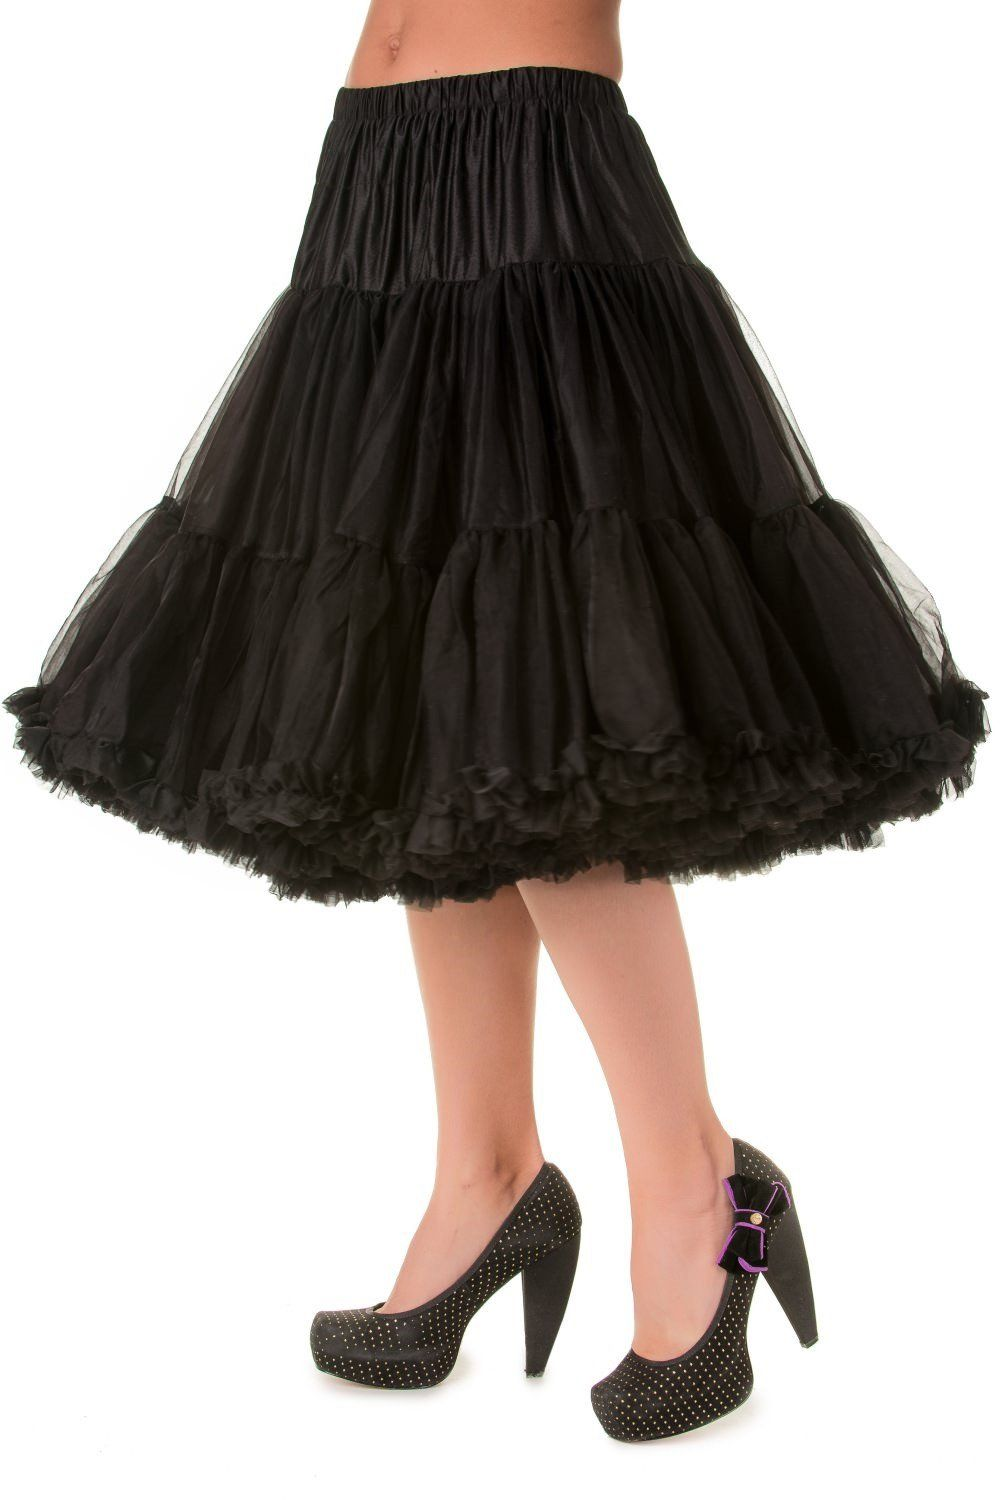 c4c024627 Vintage 50's plus size Swing Dance Black Color Soft Fluffy dress volume  Petticoat - Lifeforms Gorgeous and super soft petticoat. Light weight and  ideal for ...